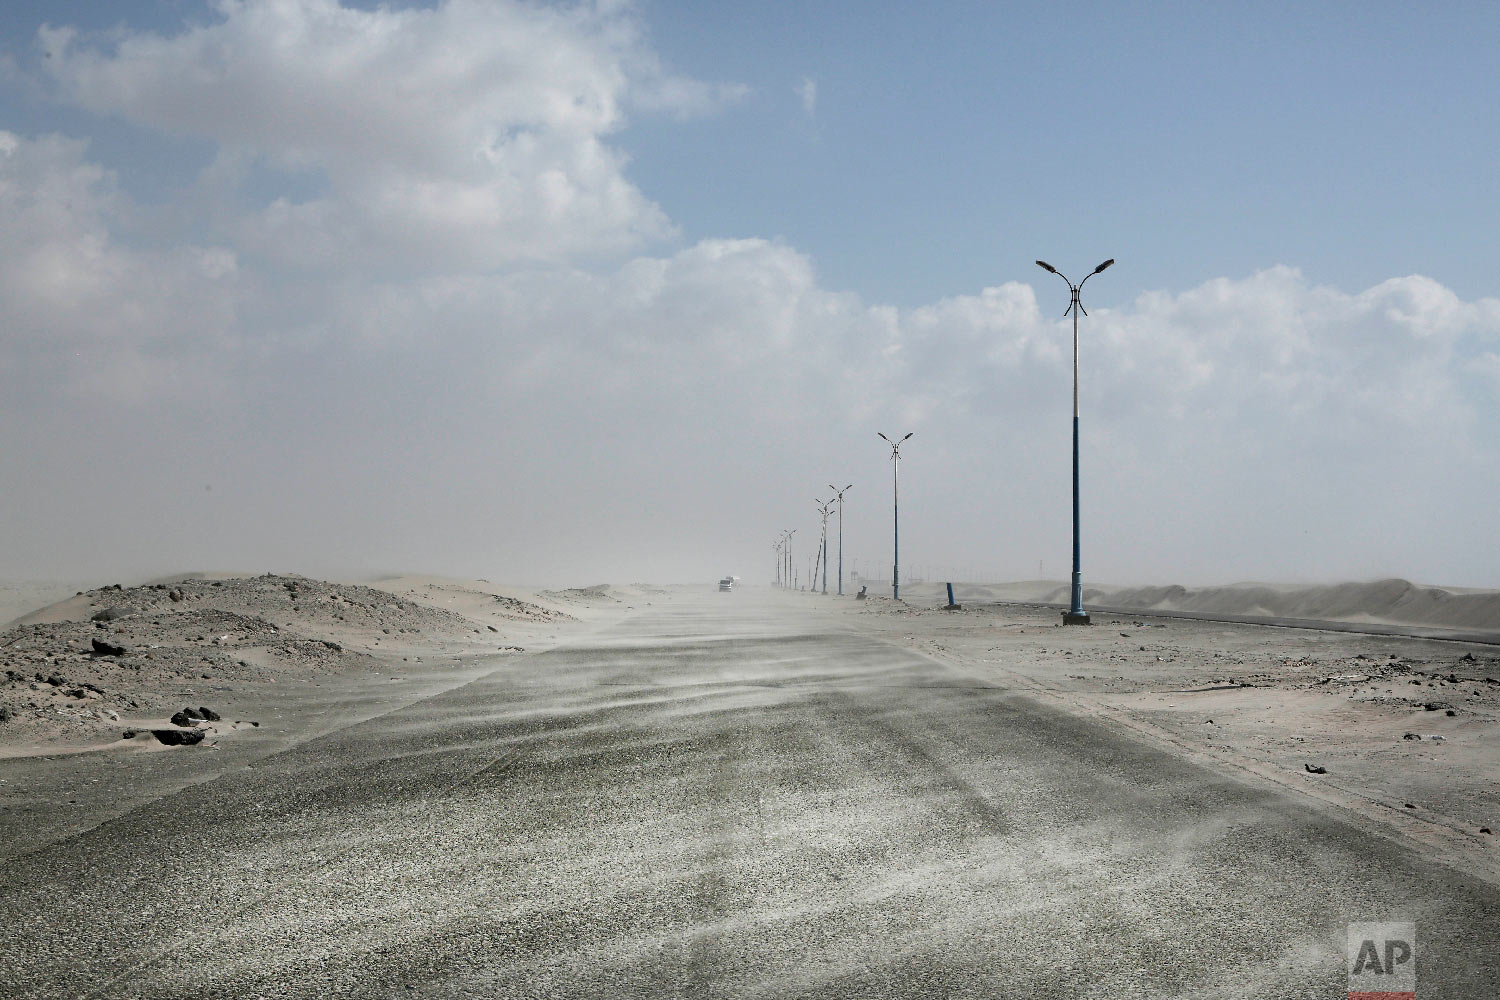 Sand drifts over an empty highway from Abyan to Aden in Yemen on Feb. 15, 2018. (AP Photo/Nariman El-Mofty)